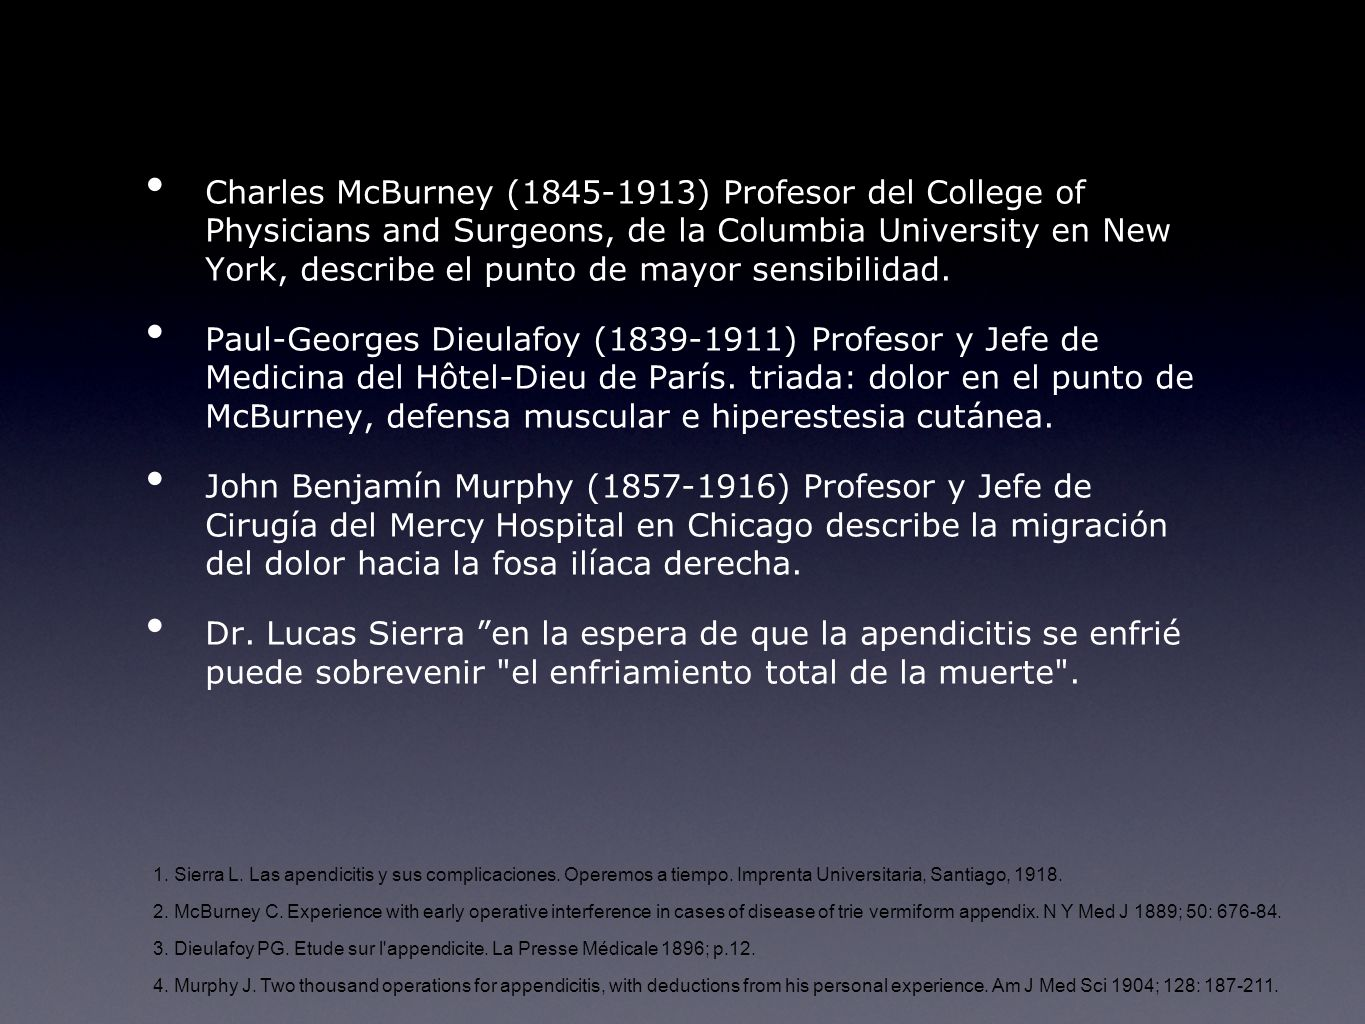 Charles McBurney (1845-1913) Profesor del College of Physicians and Surgeons, de la Columbia University en New York, describe el punto de mayor sensibilidad.